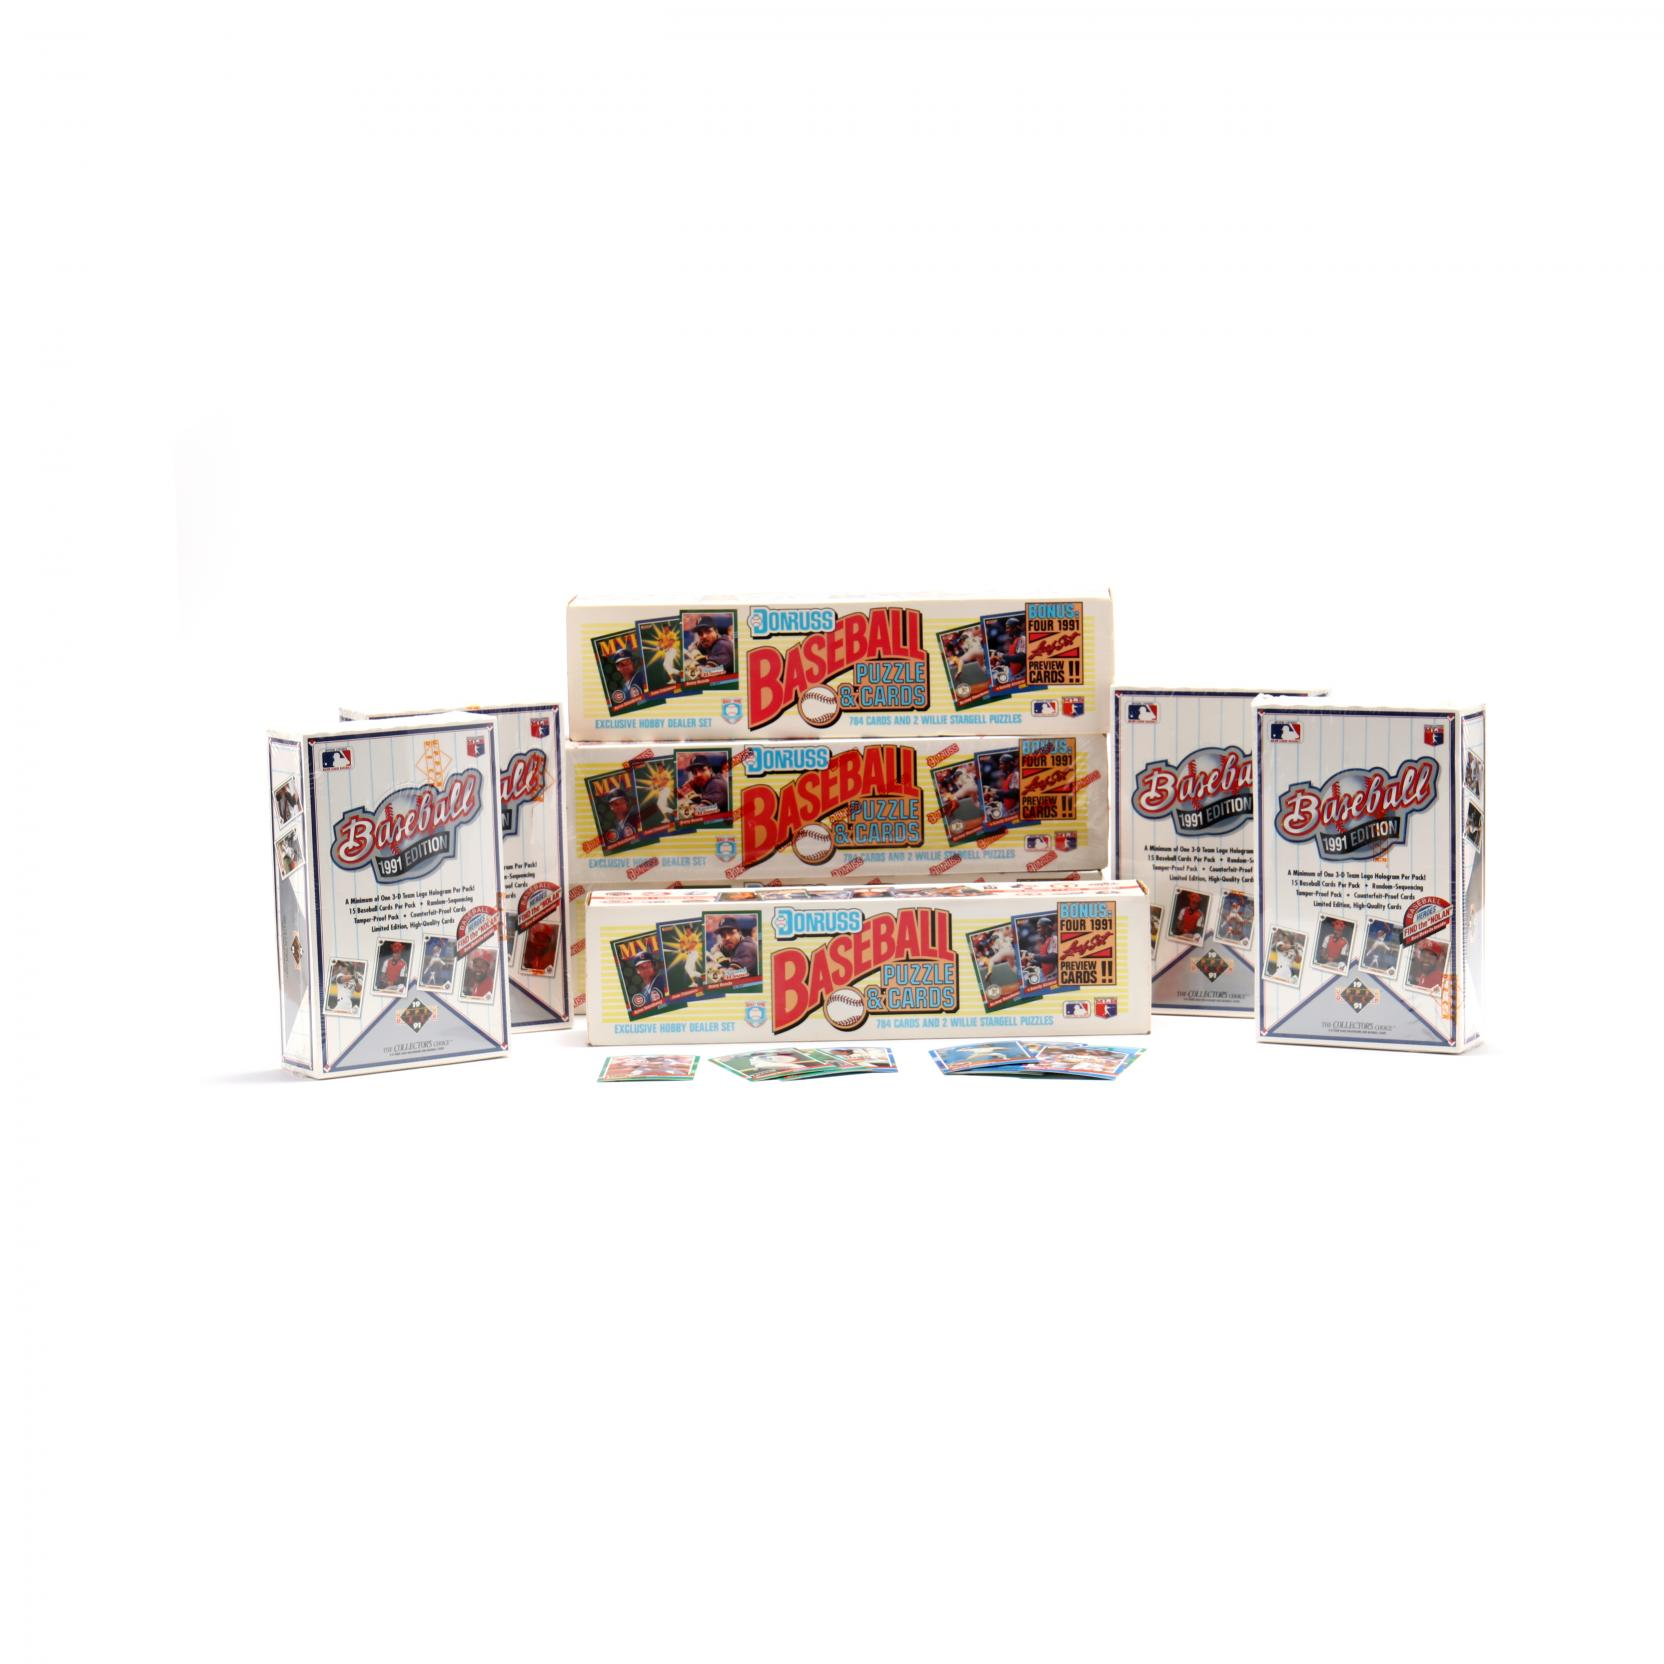 eight-boxed-sets-of-1991-baseball-cards